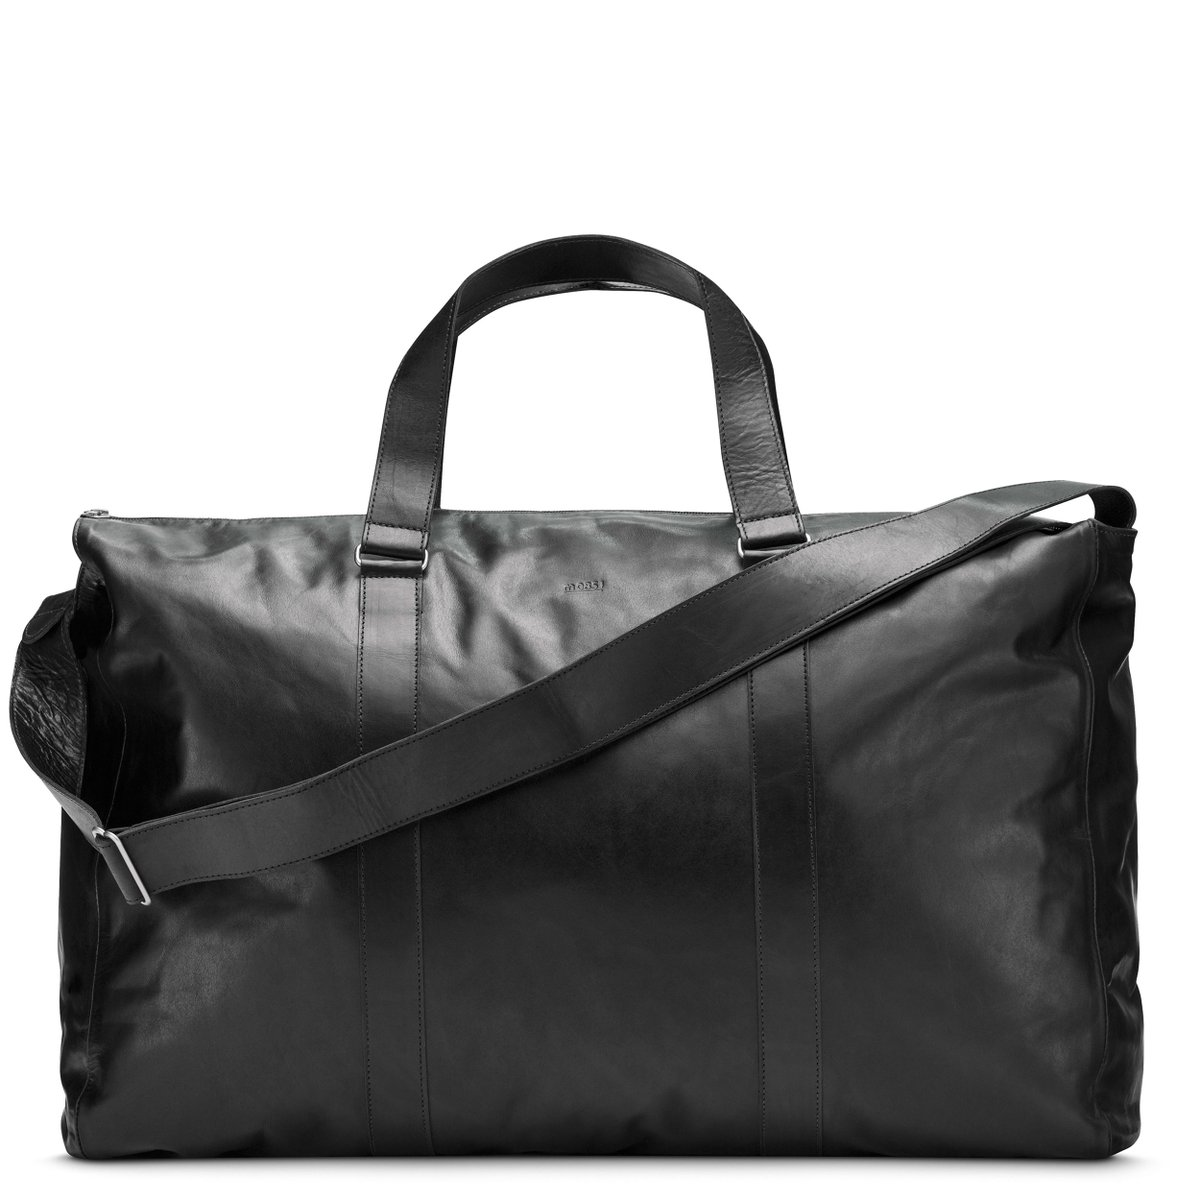 To celebrate our #Improper25, we're giving away @m0851official's Italian leather duffel (valued at $760!) RT to win! https://t.co/wGQb792GHJ